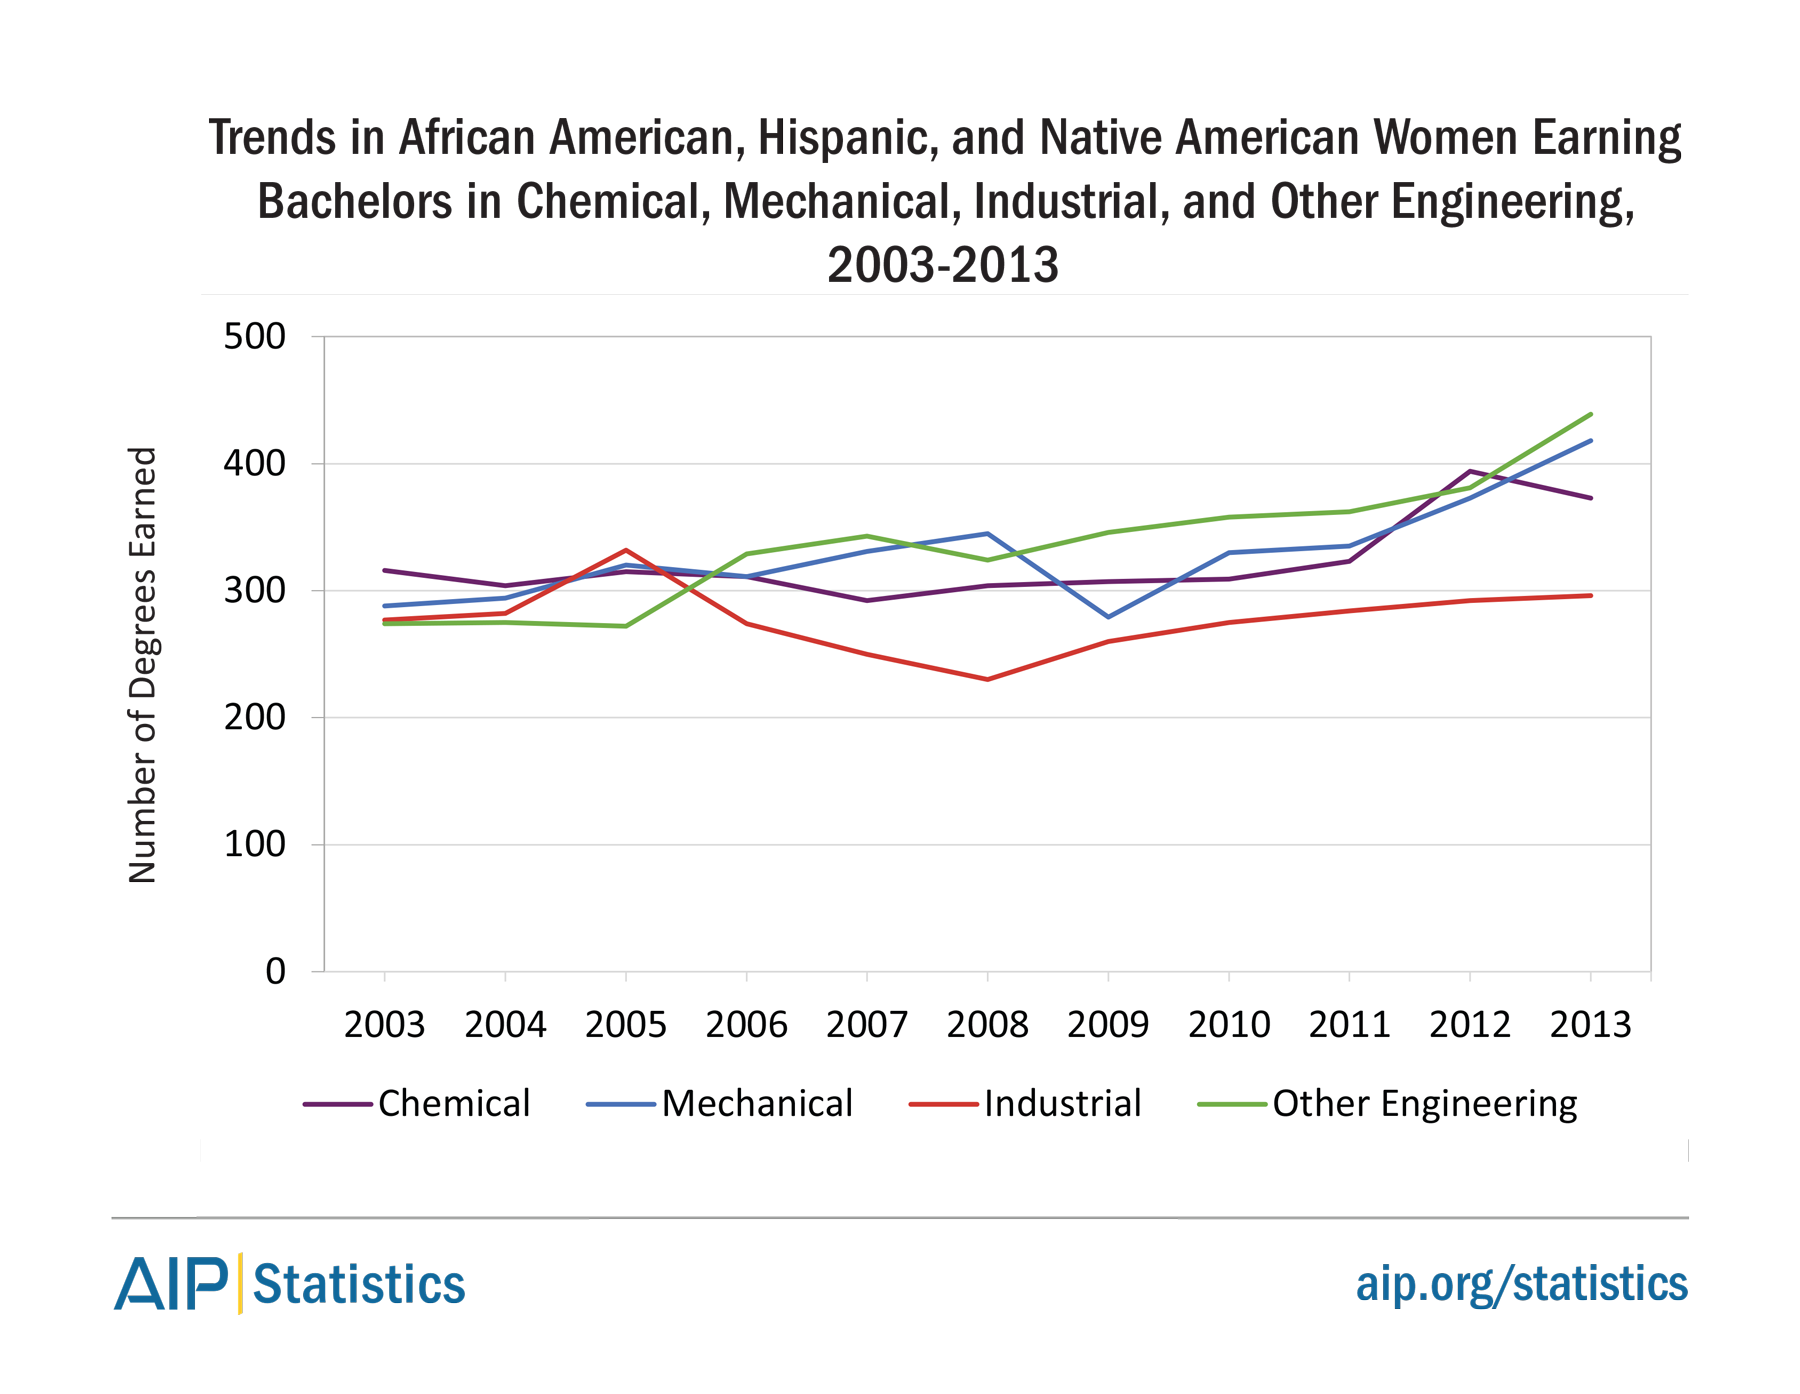 Trends in African American, Hispanic, and Native American Women Earning Bachelors in Chemical, Mechanical, Industrial, and Other Engineering, 2003-2013